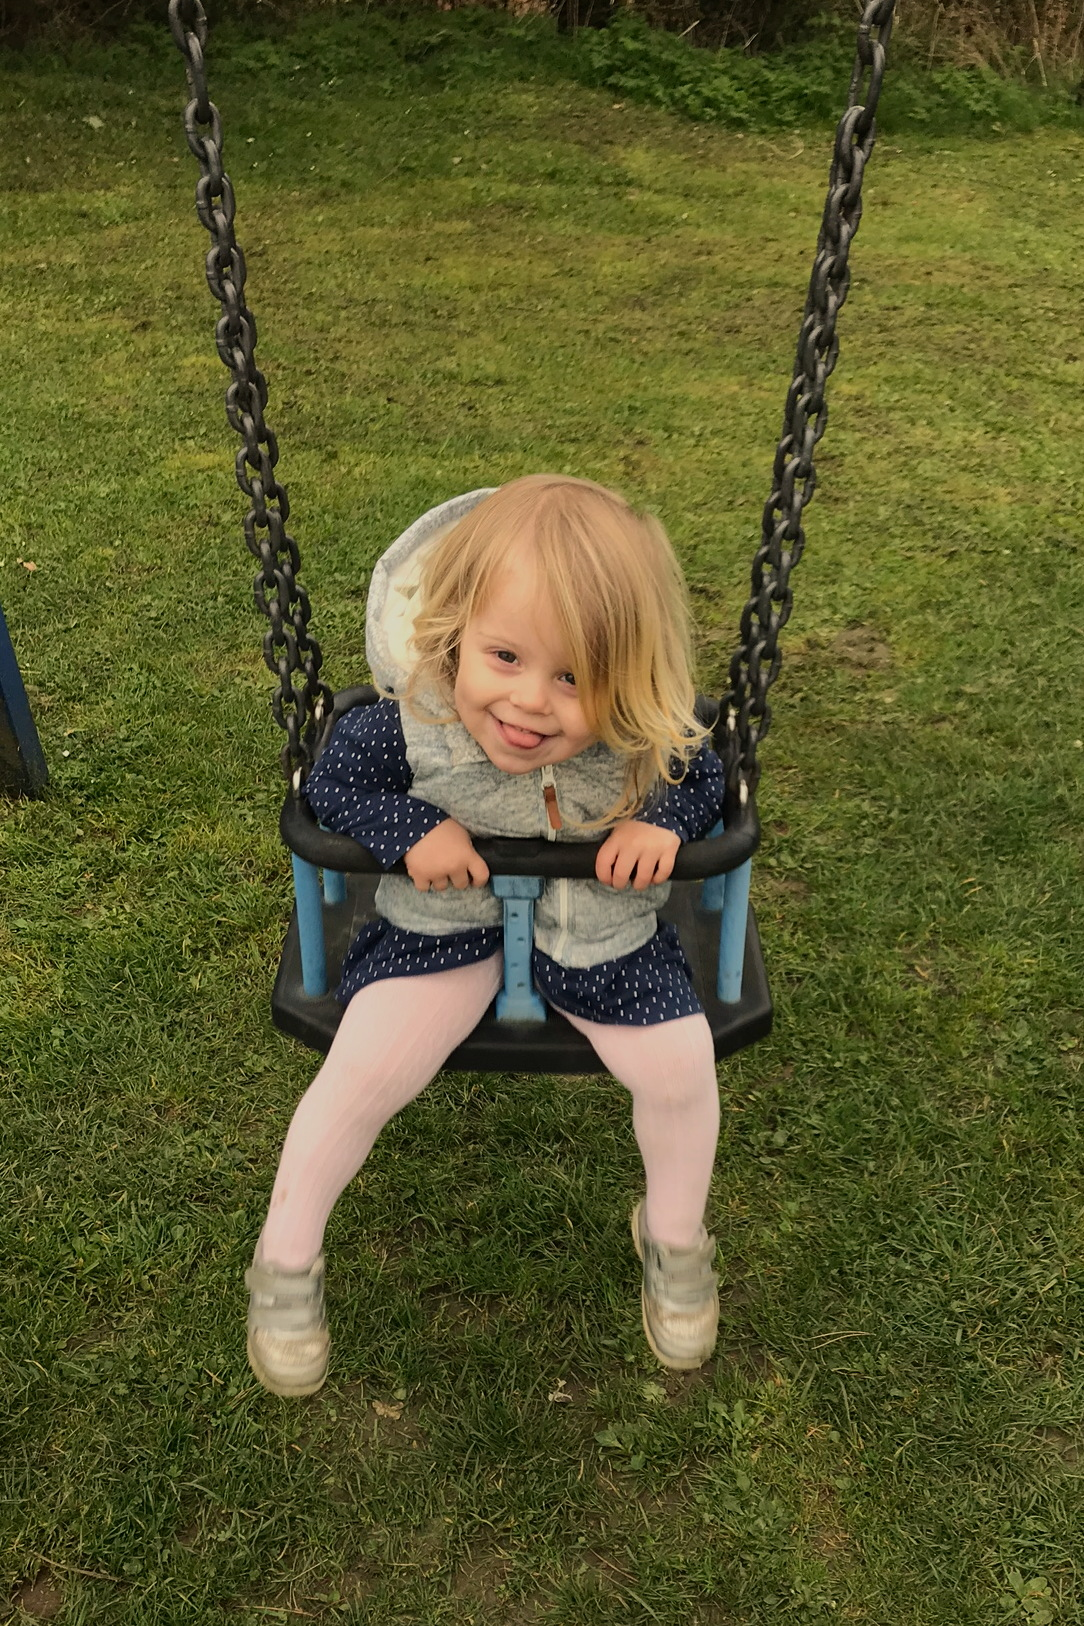 Two year old on a swing